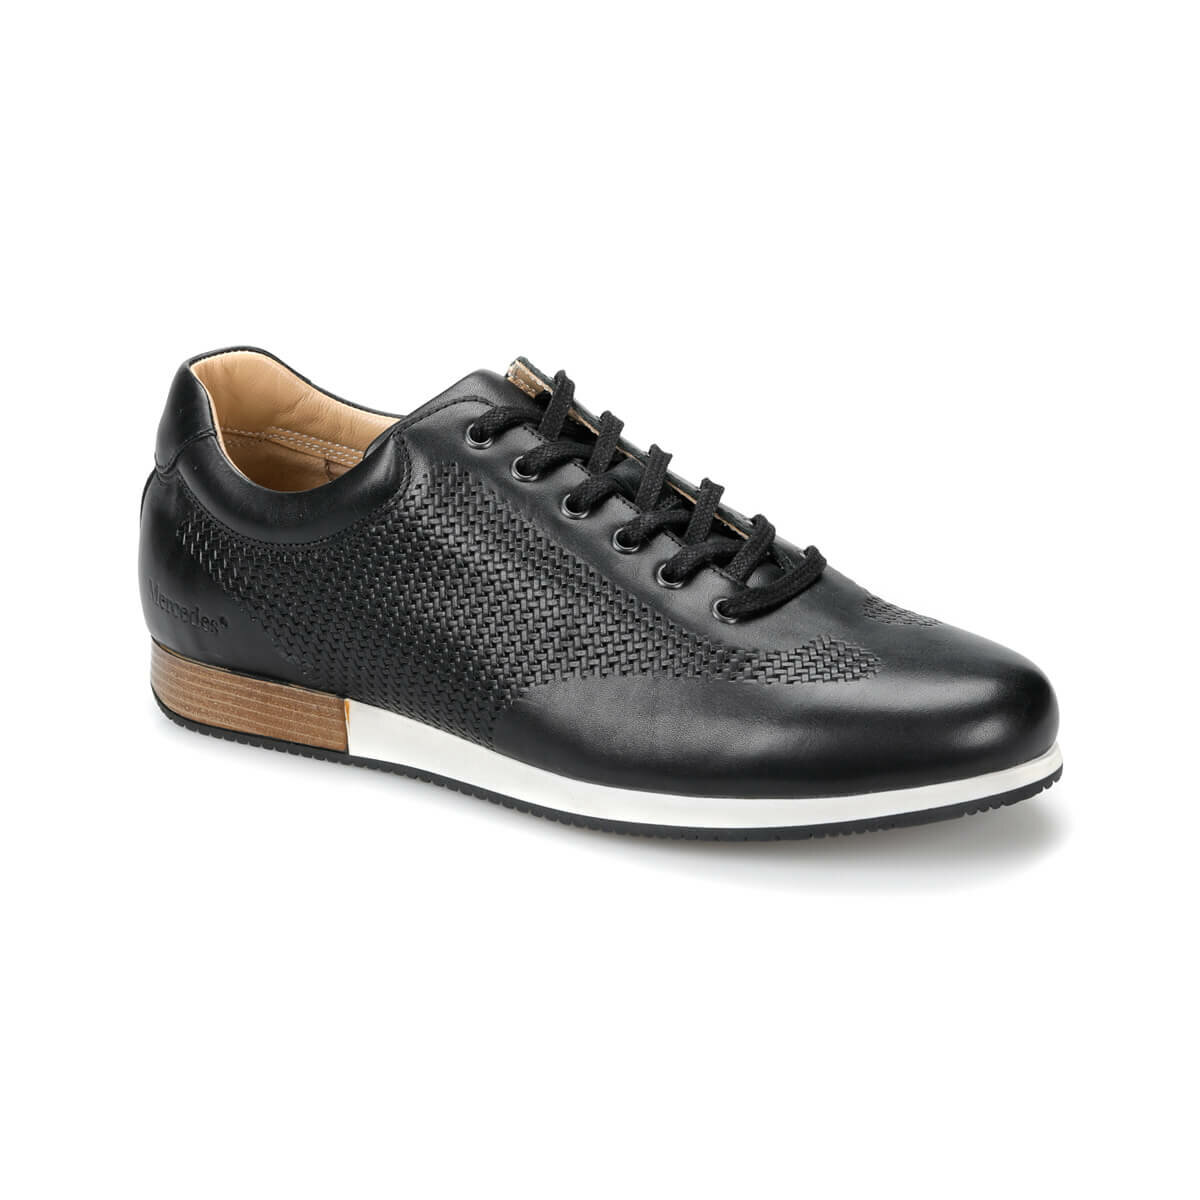 FLO GRANADA Black Men Dress Shoes MERCEDES